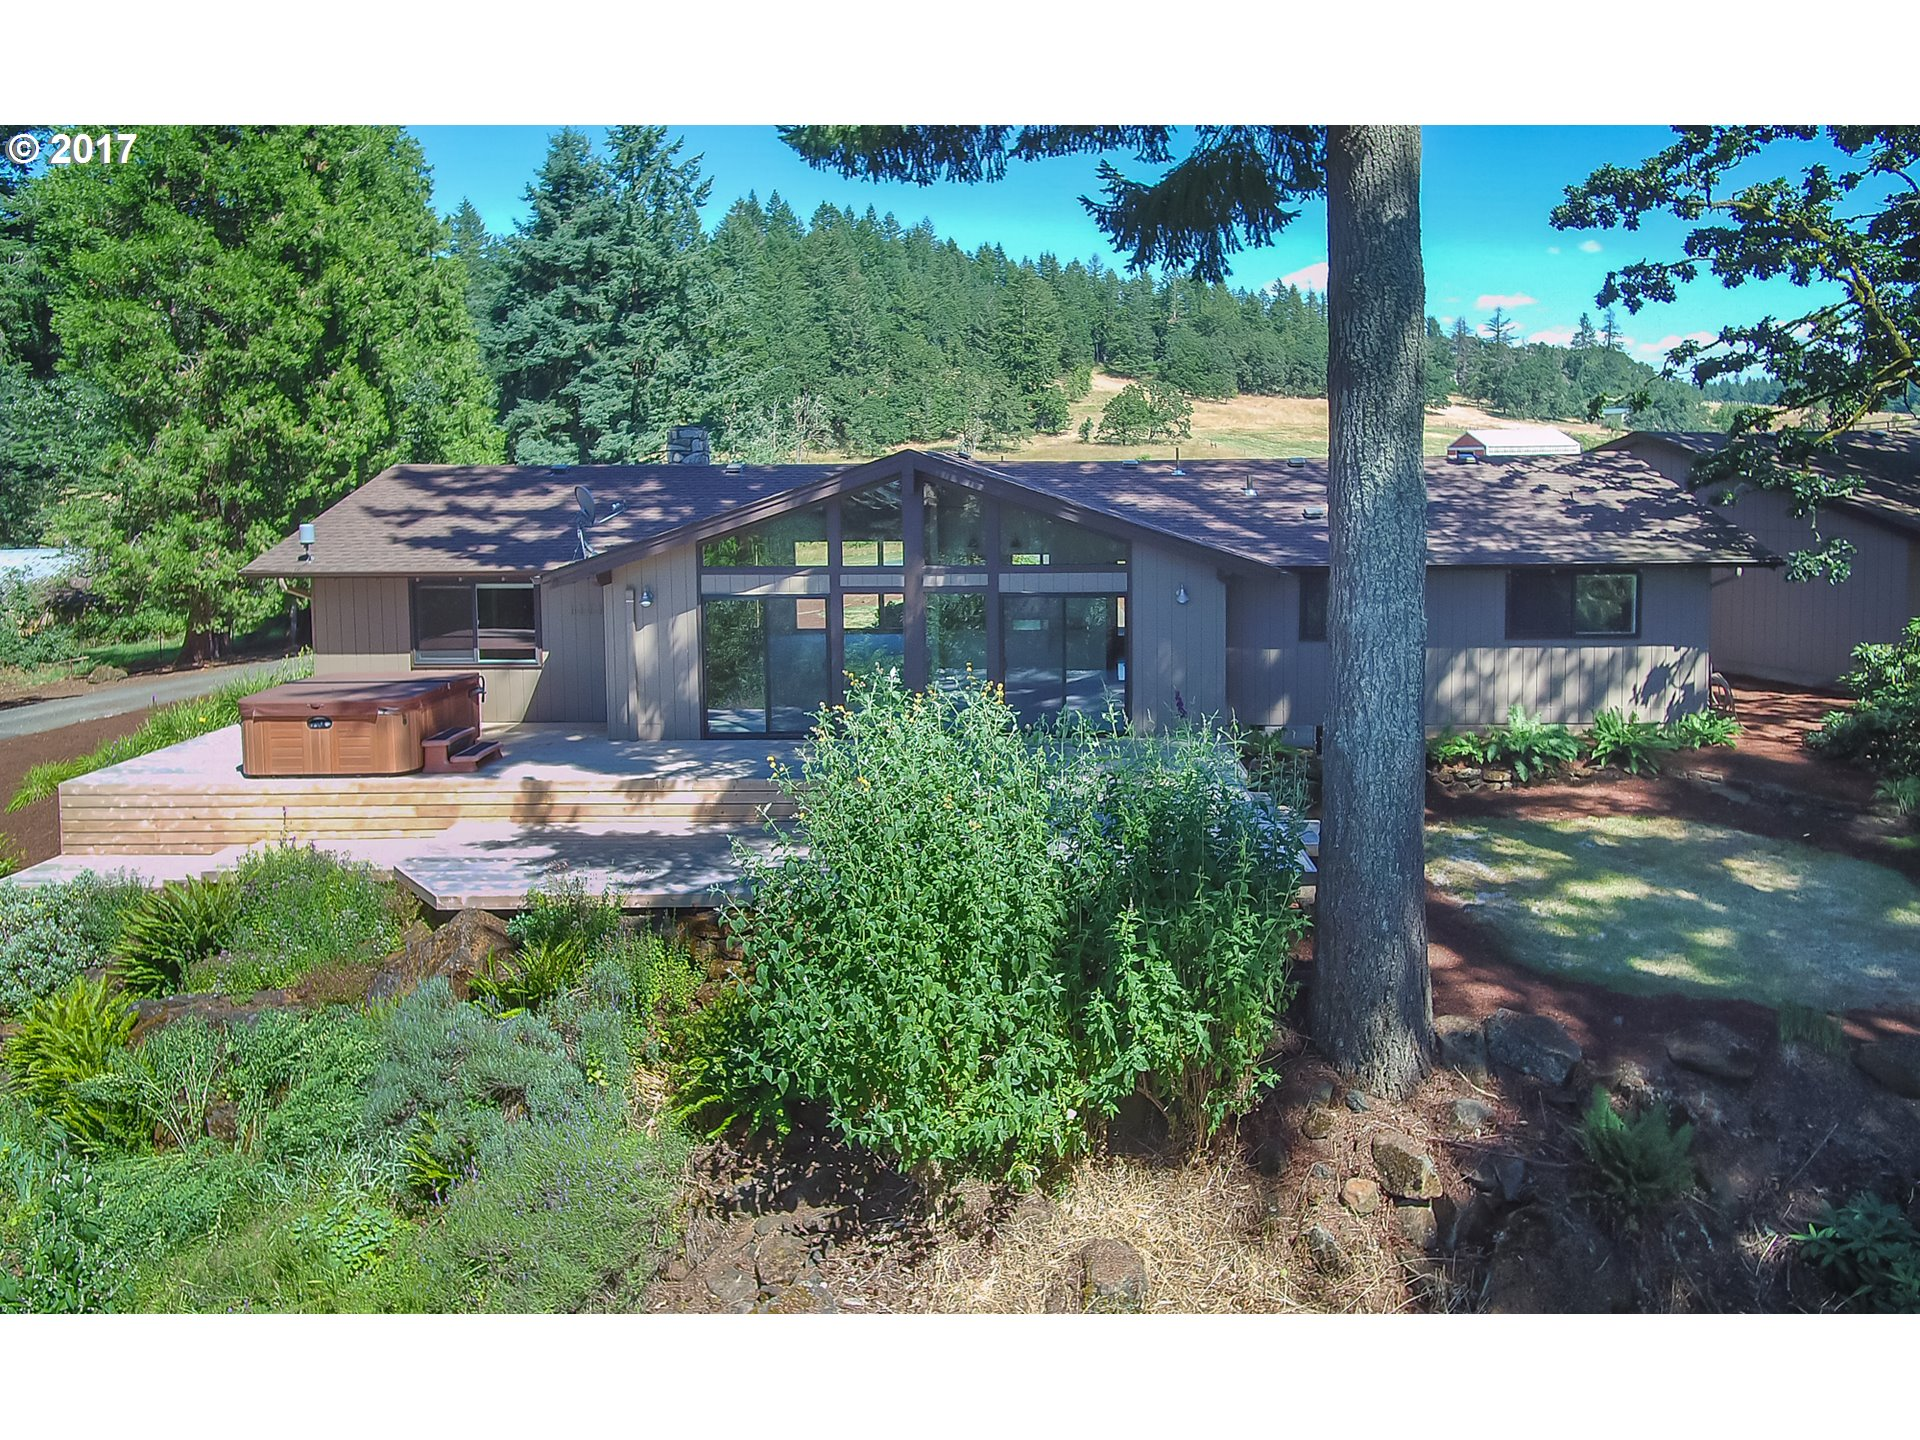 83761 S MORNINGSTAR RD, Creswell, OR 97426